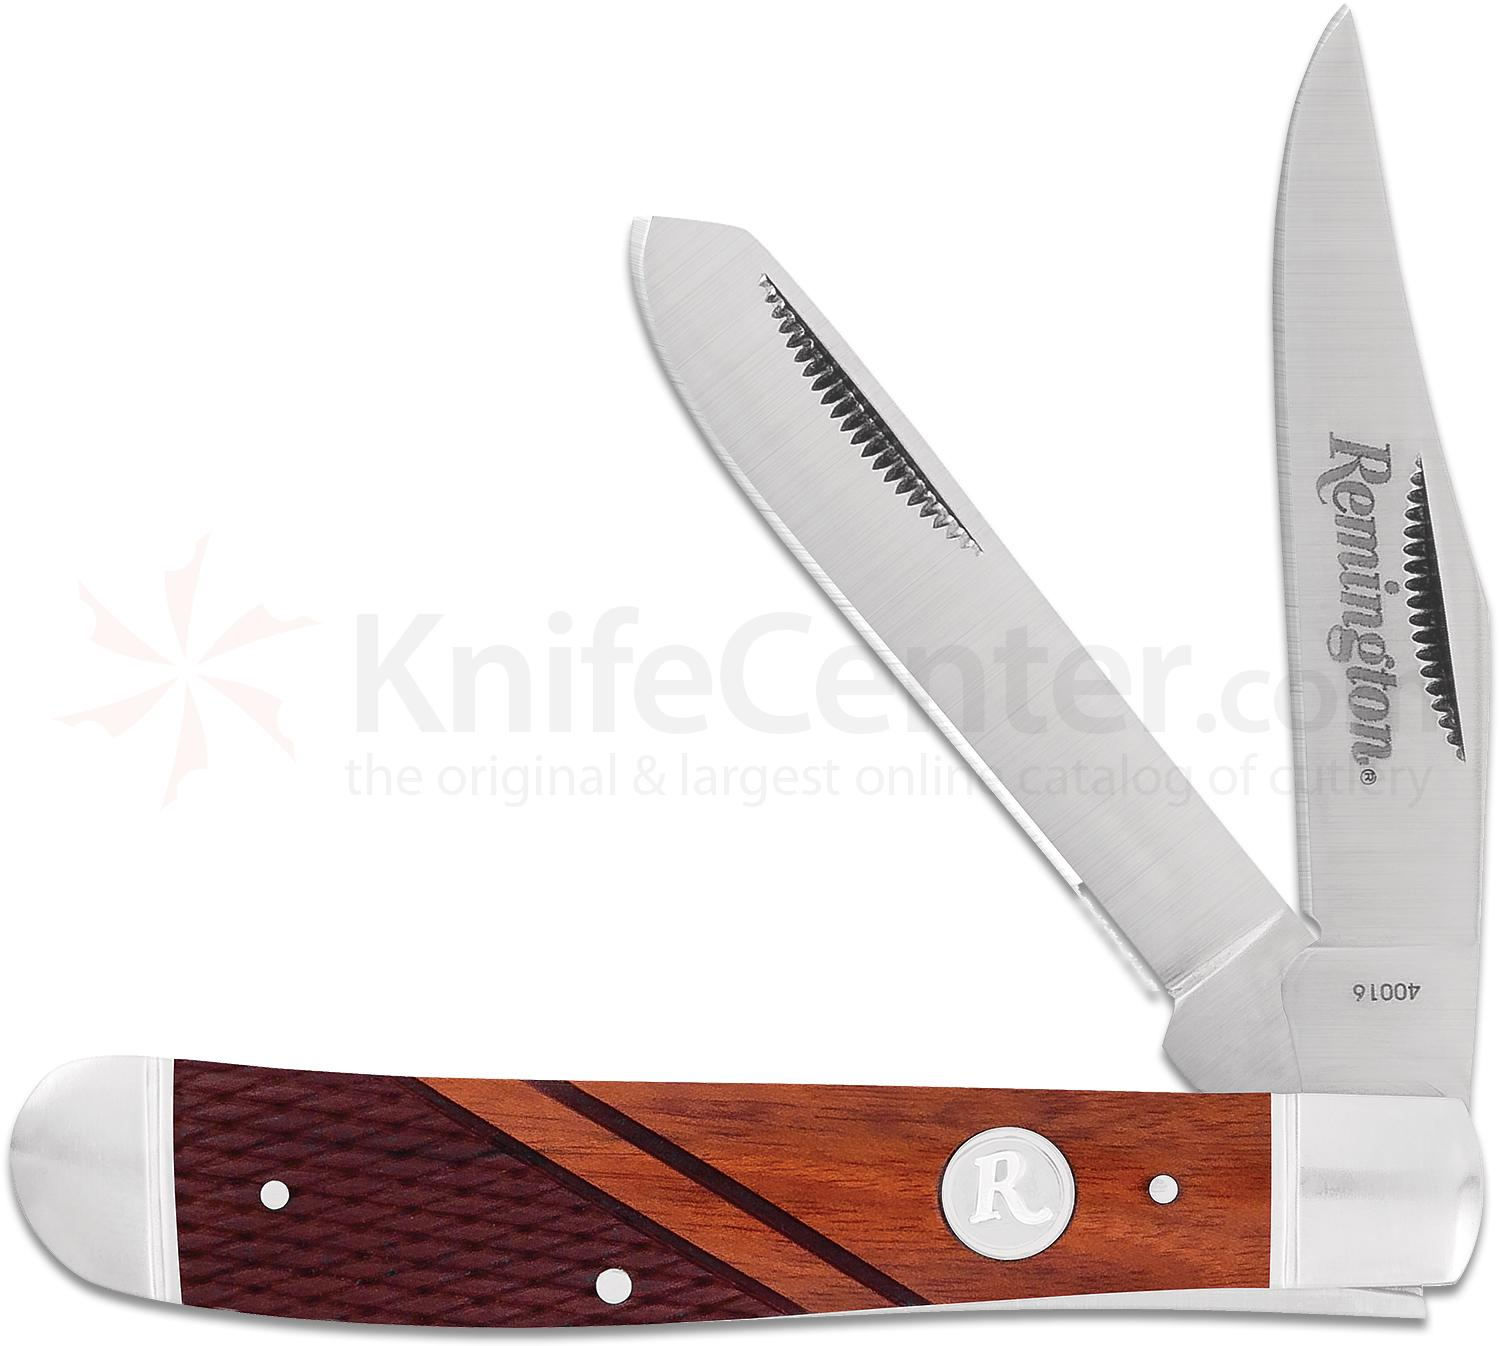 Remington Heritage Series Medium Trapper Folder 3.5 inch Closed 147bab12f07e